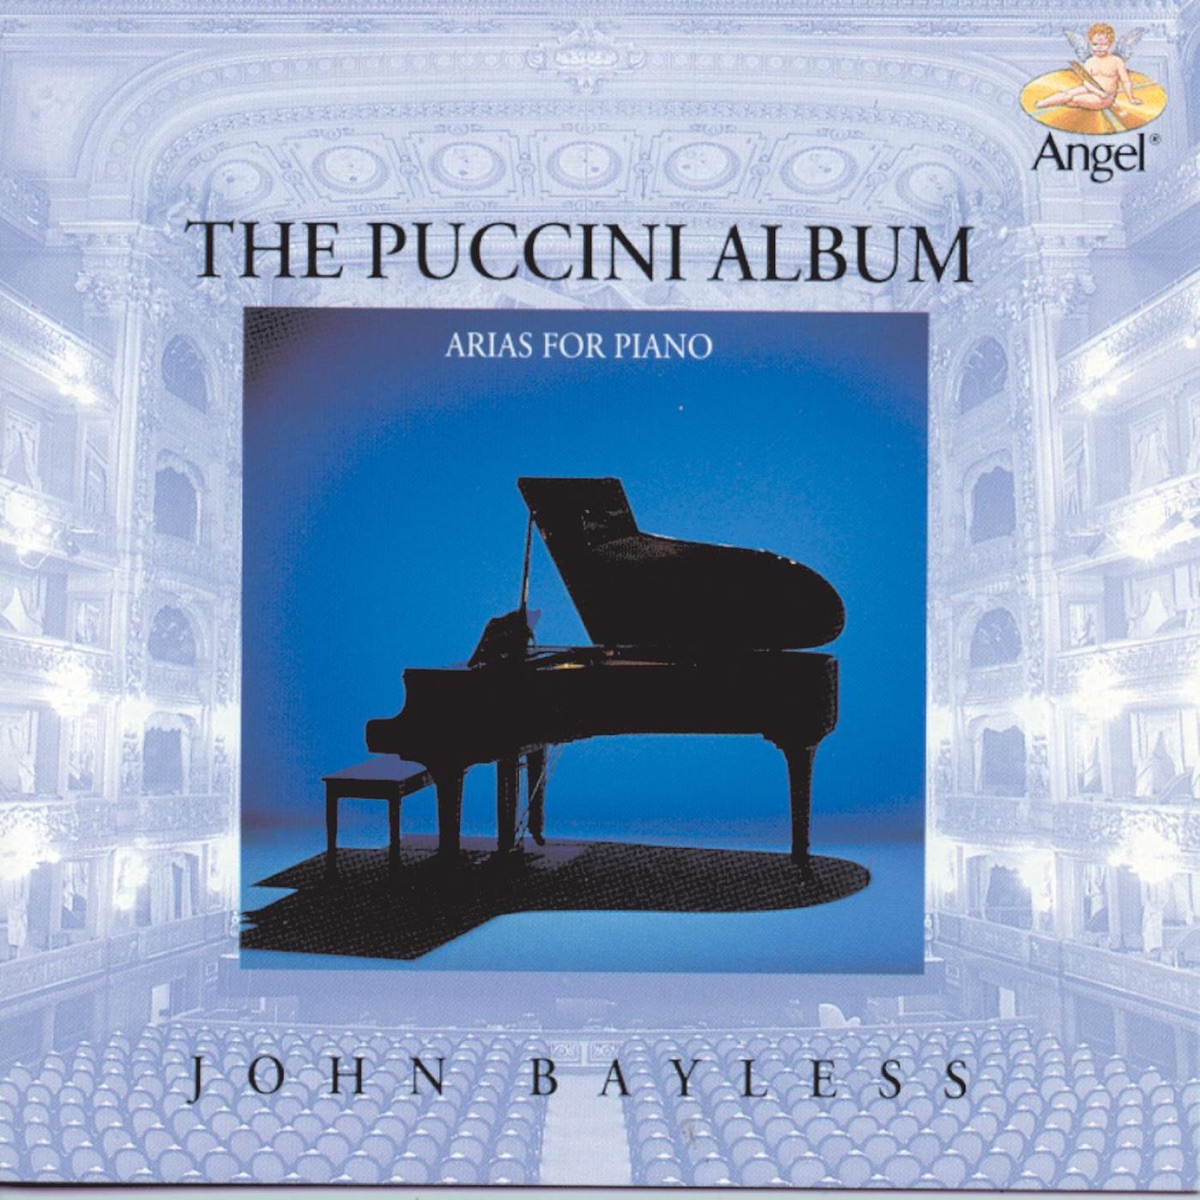 The Puccini Album: Arias for Piano Album Cover by John Bayless